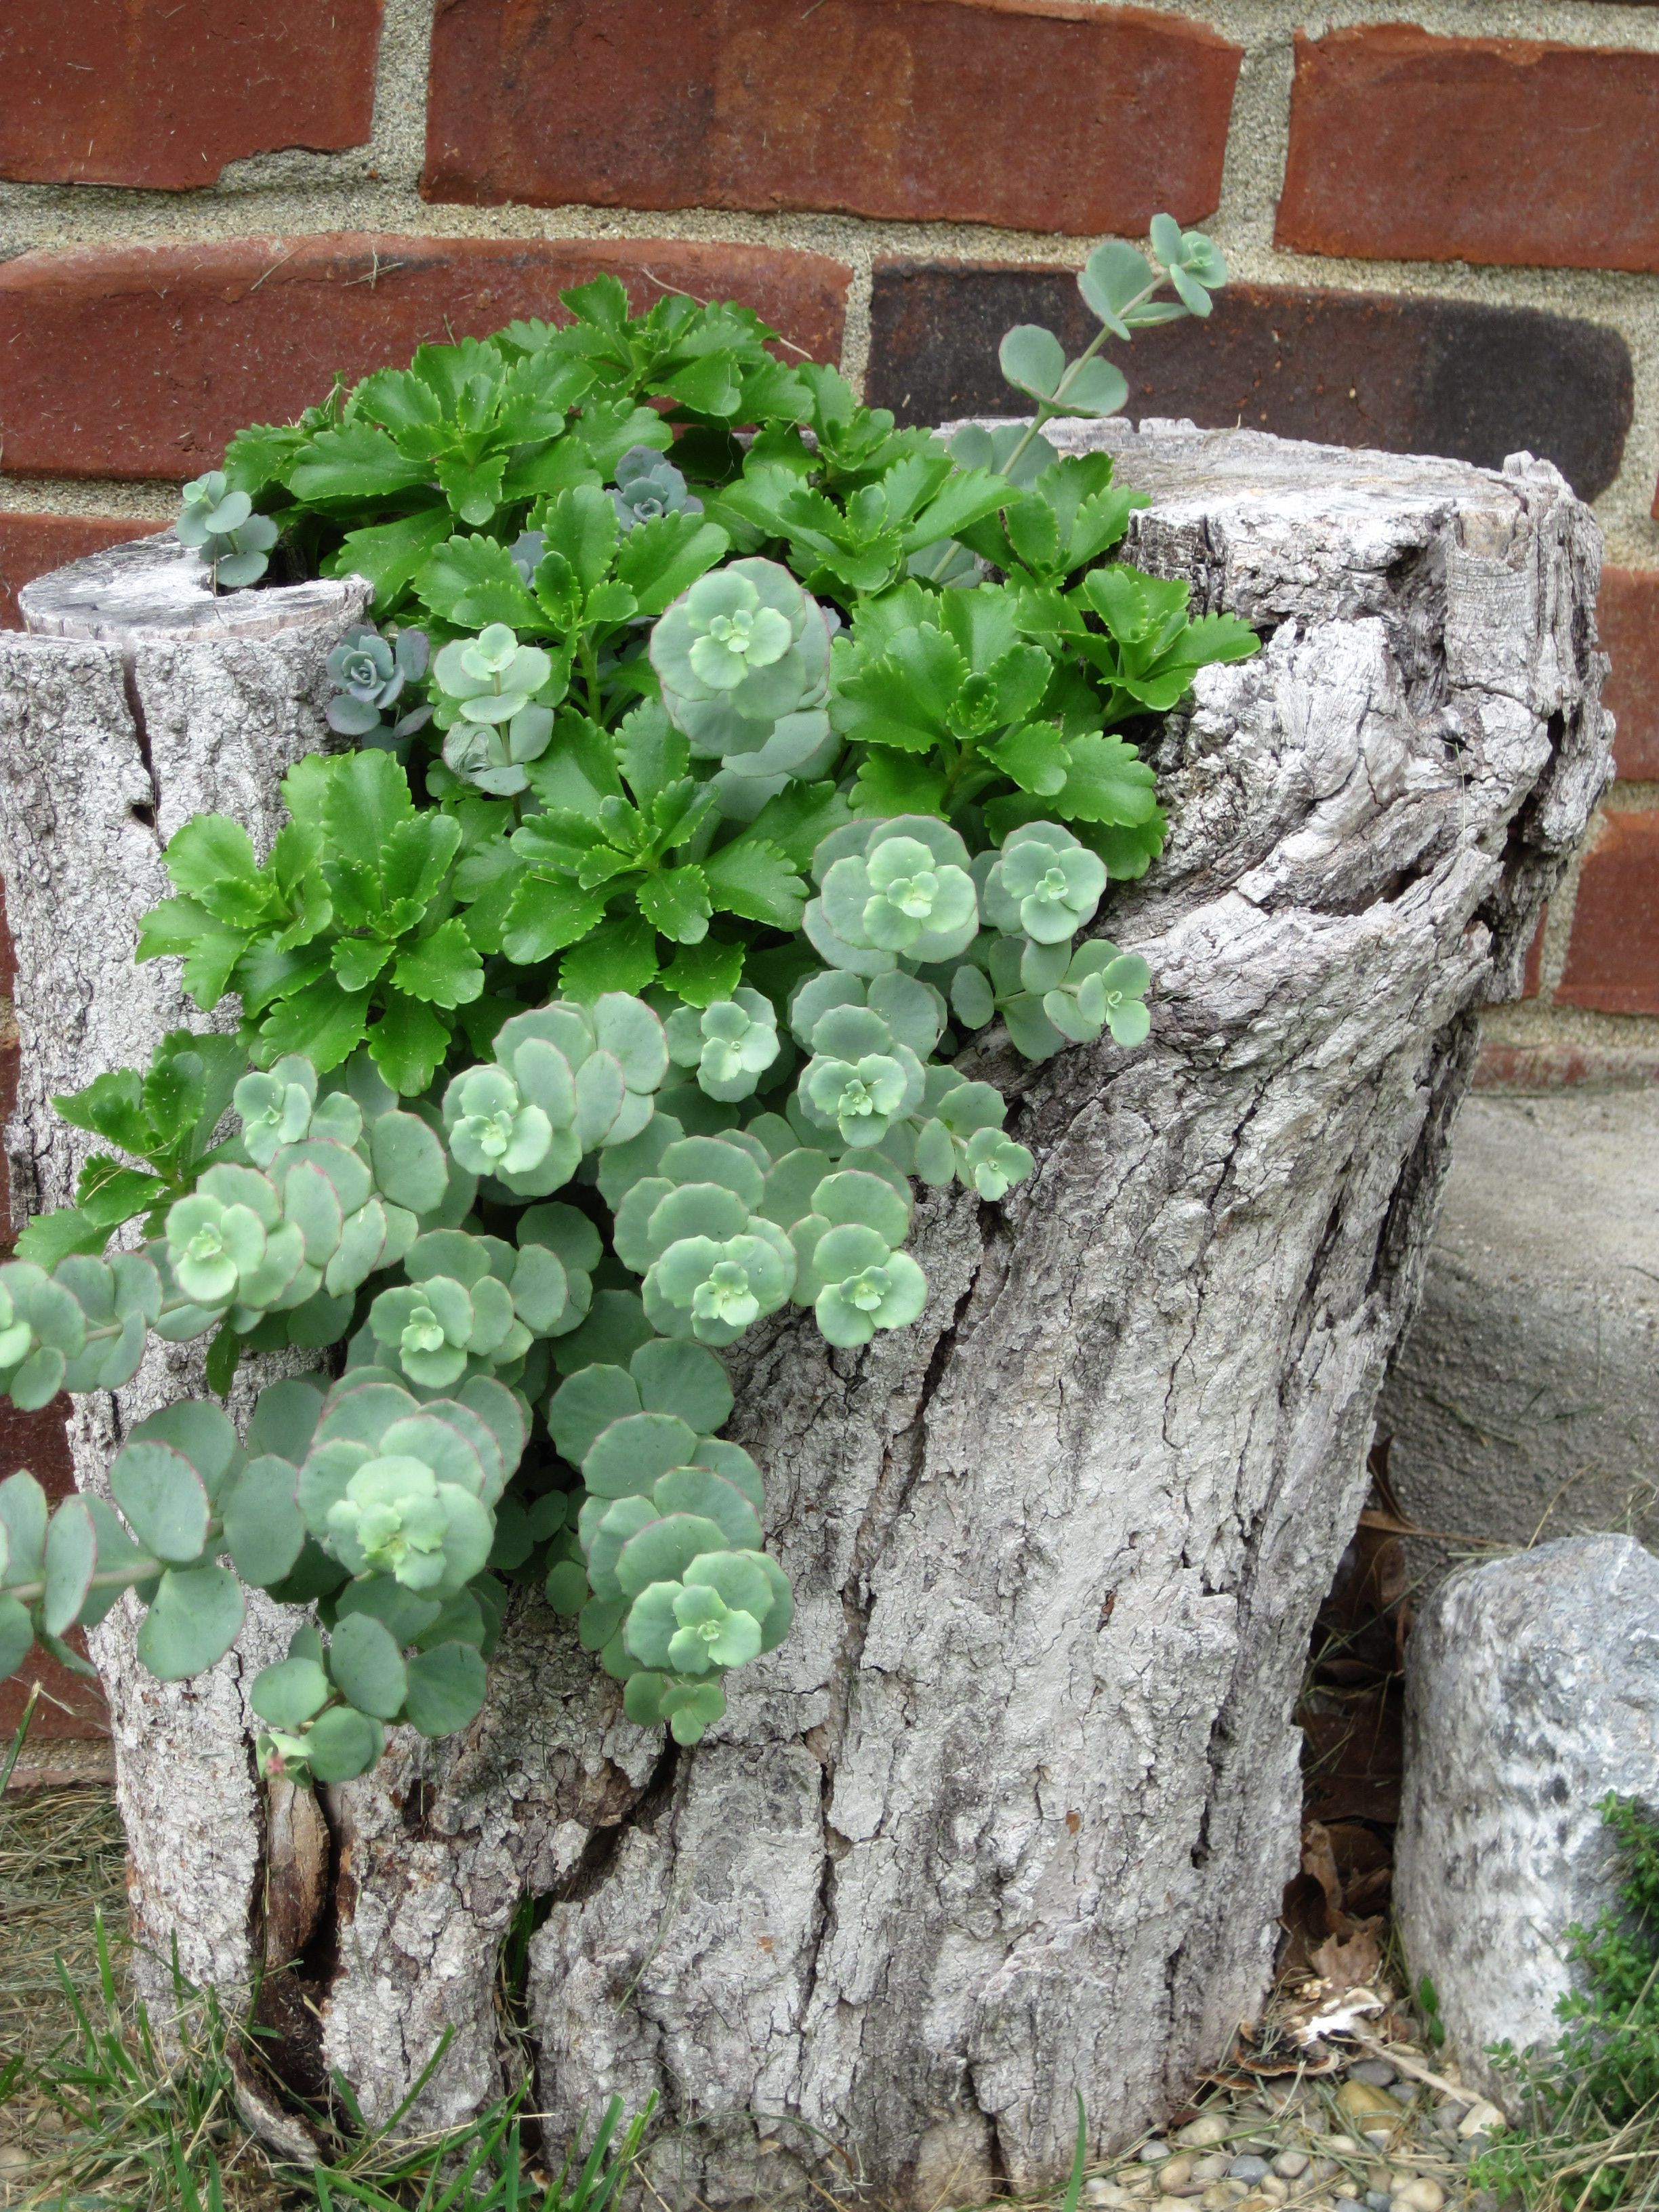 Outdoor tree stump ideas - 150 Remarkable Projects And Ideas To Improve Your Home S Curb Appeal Diy